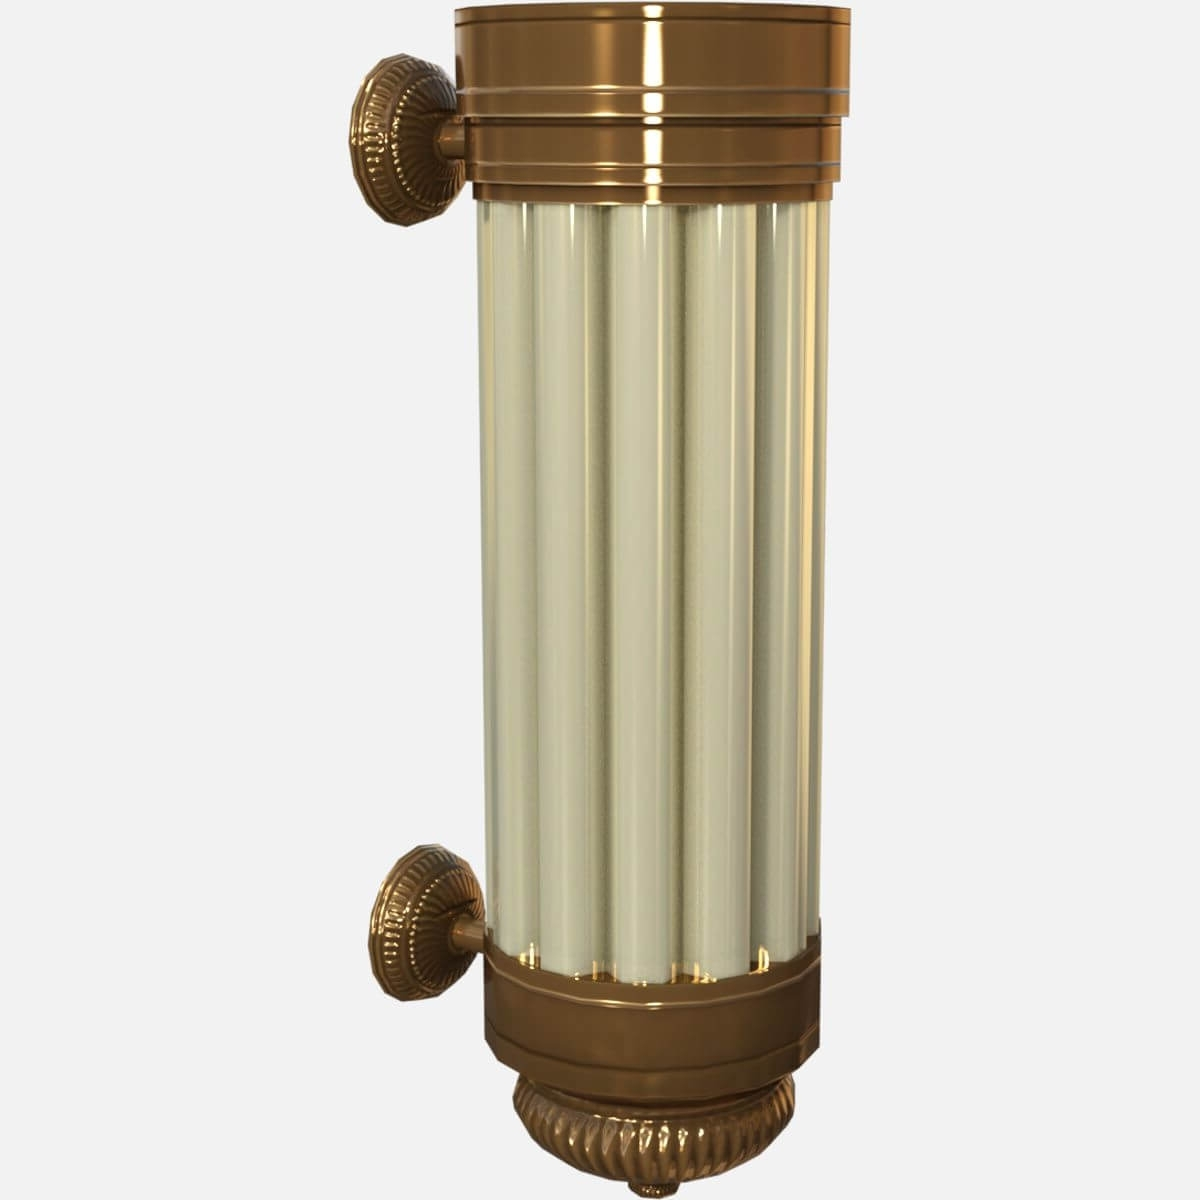 Most Current Art Deco Wall Sconces Inside Art Deco Wall Sconce Light 3D Model (View 13 of 20)